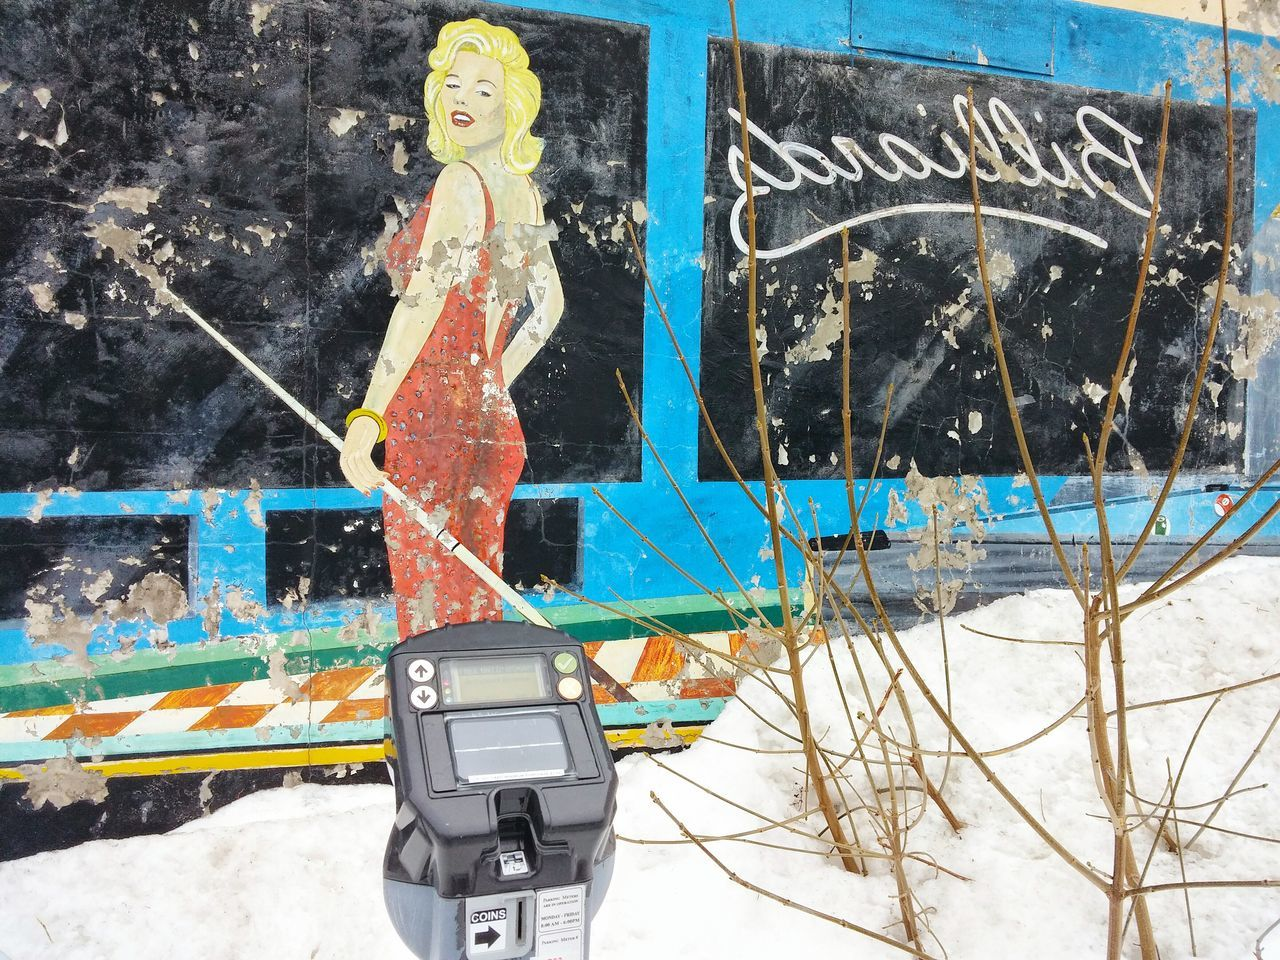 St. Johns  NL Downtown Blond Pool Red Dress Art Snow Parking Meter Retro Close-up Outdoors Urban Photography Mobilephotography All Around Us Painting On The Walls